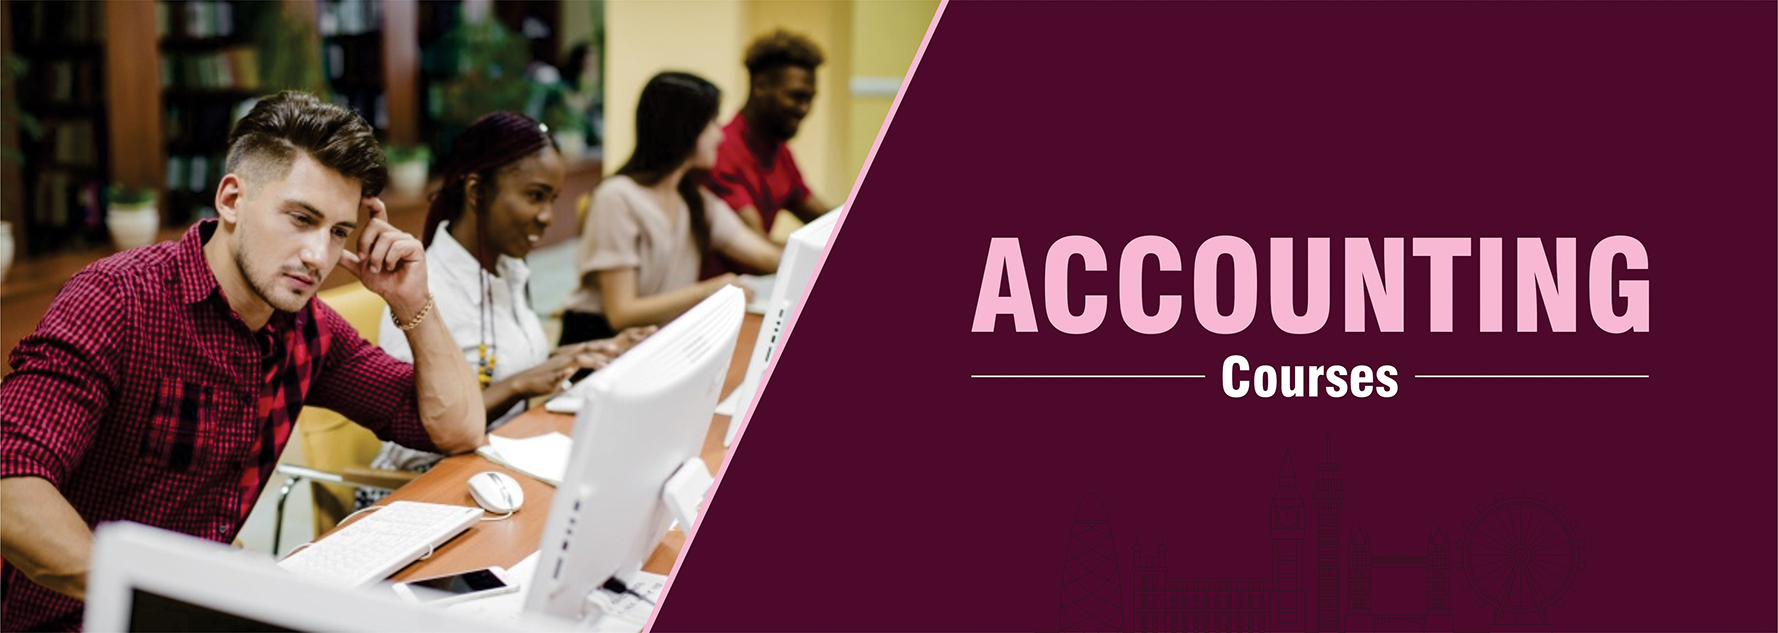 accounting-courses